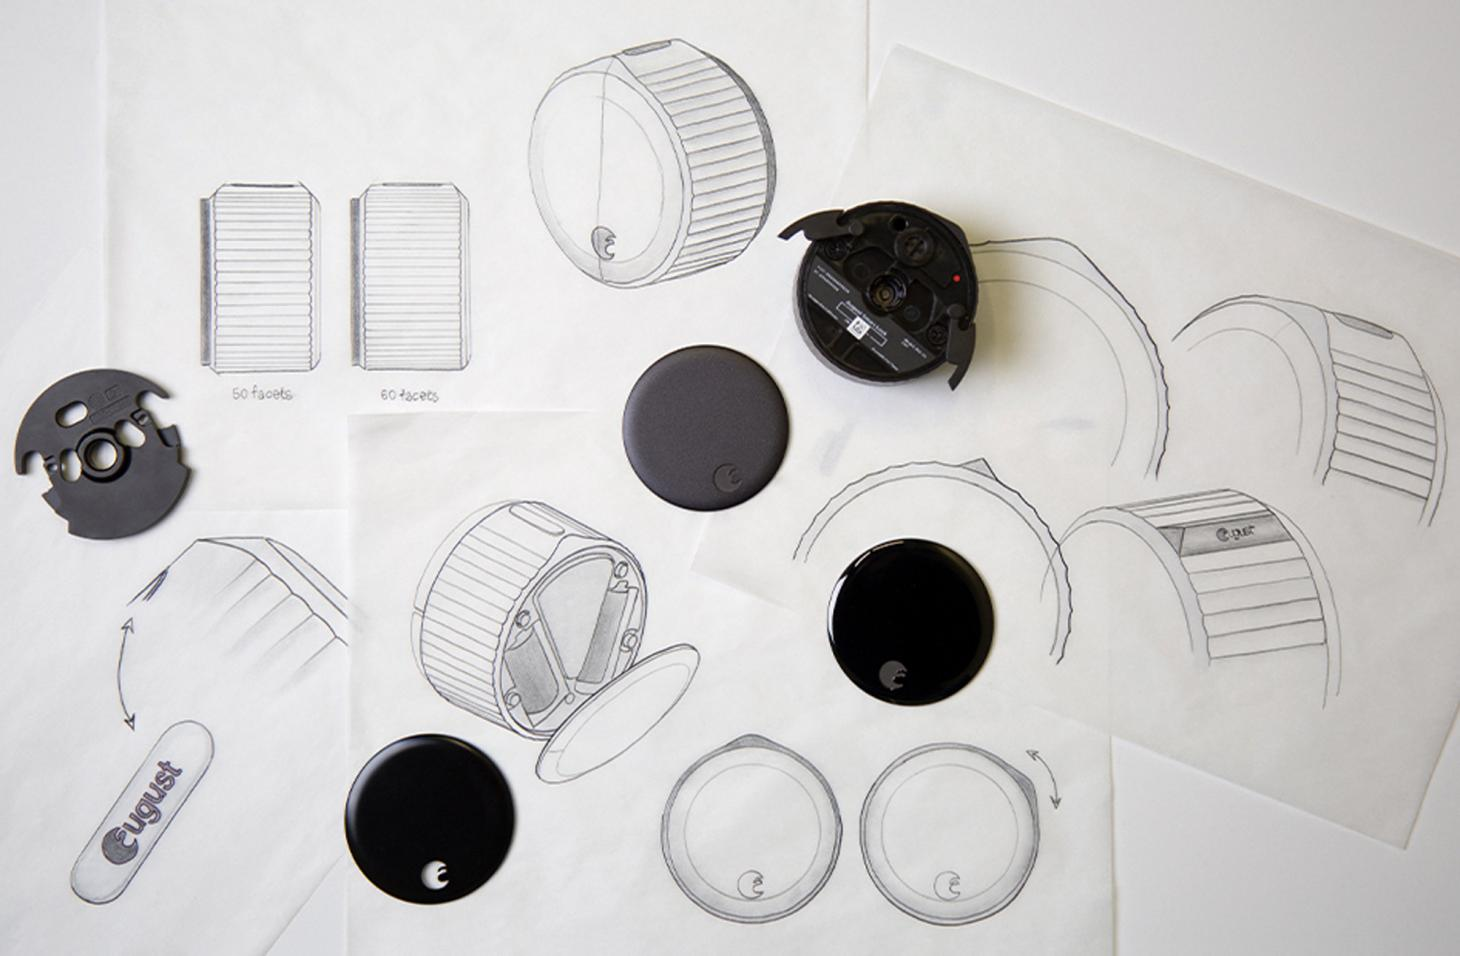 Sketches and prototypes by Yves Behar, for the keyless August home access system, which includes a smart lock, keypad and doorbell cam